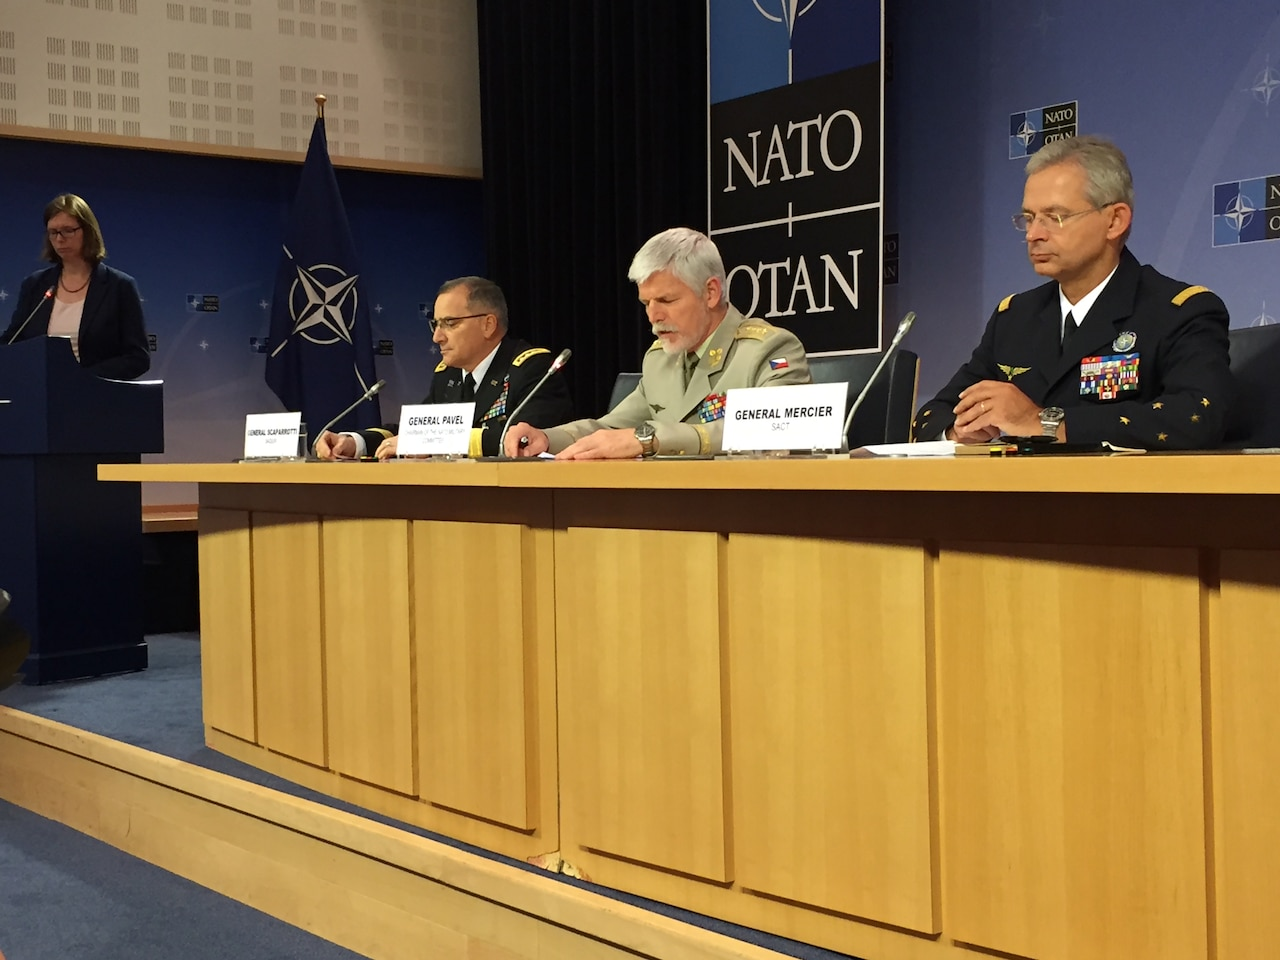 Left to right: U.S. Army Gen. Curtis M. Scaparrotti, NATO's supreme allied commander Europe; Gen. Petr Pavel of the Czech army, the chairman of the NATO Military Committee; and Gen. Denis Mercier of the French air force, NATO's supreme allied commander for transformation, brief the reporters after a meeting of the alliance Military Committee in Brussels, May 17, 2017. DoD photo by Jim Garamone